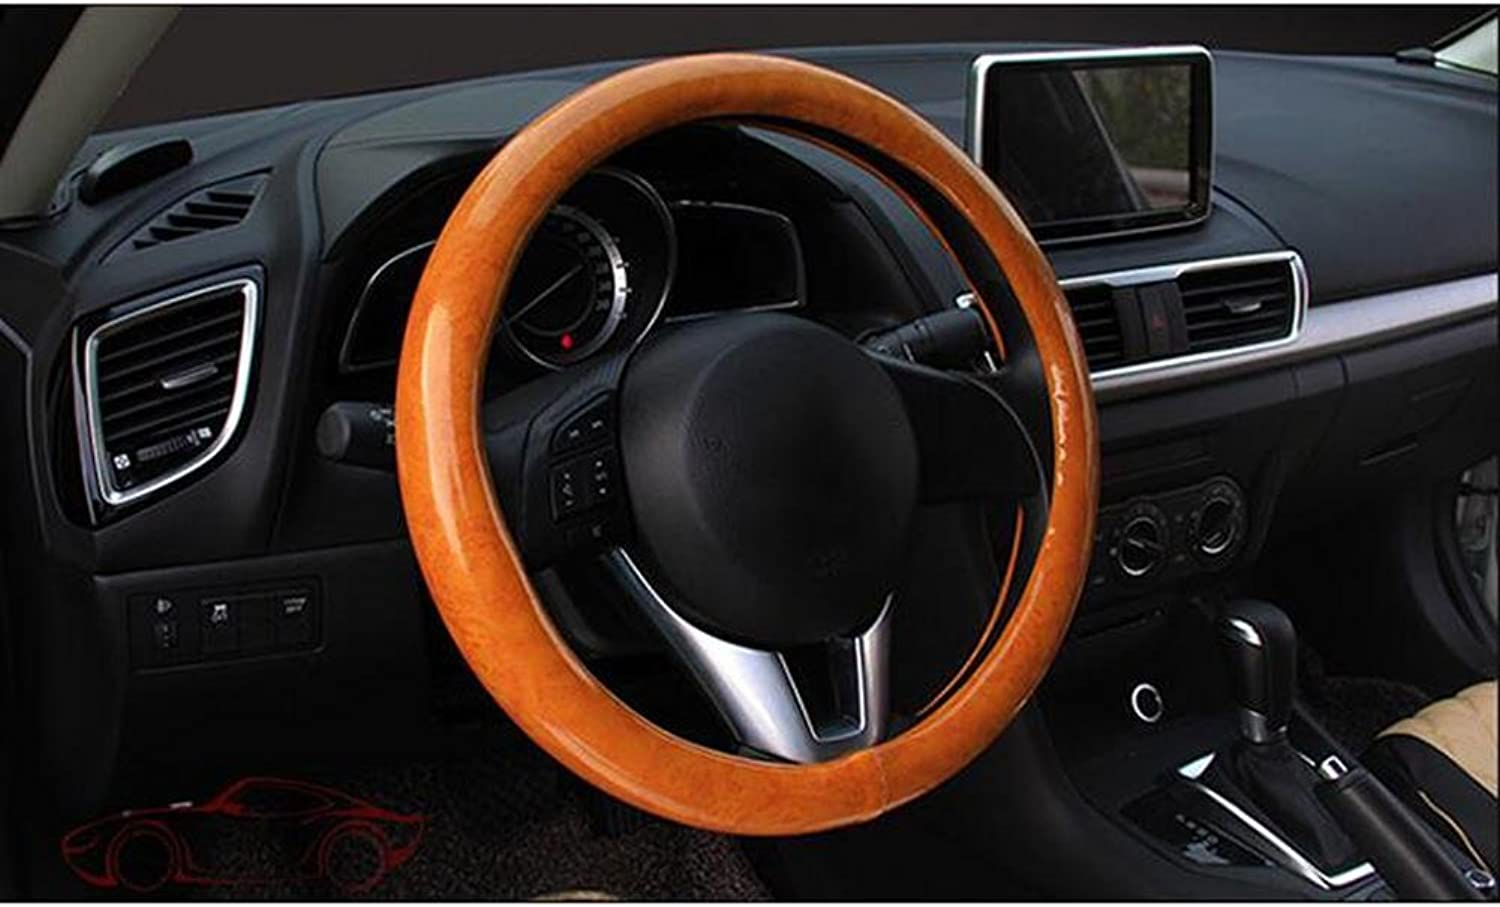 Auto Accessories 2018 Car Steering Wheel Cover Carbon Fiber Mahogany Fashion Sets of Four Seasons Universal Steering Wheel Cover Breathable, J, 38CM